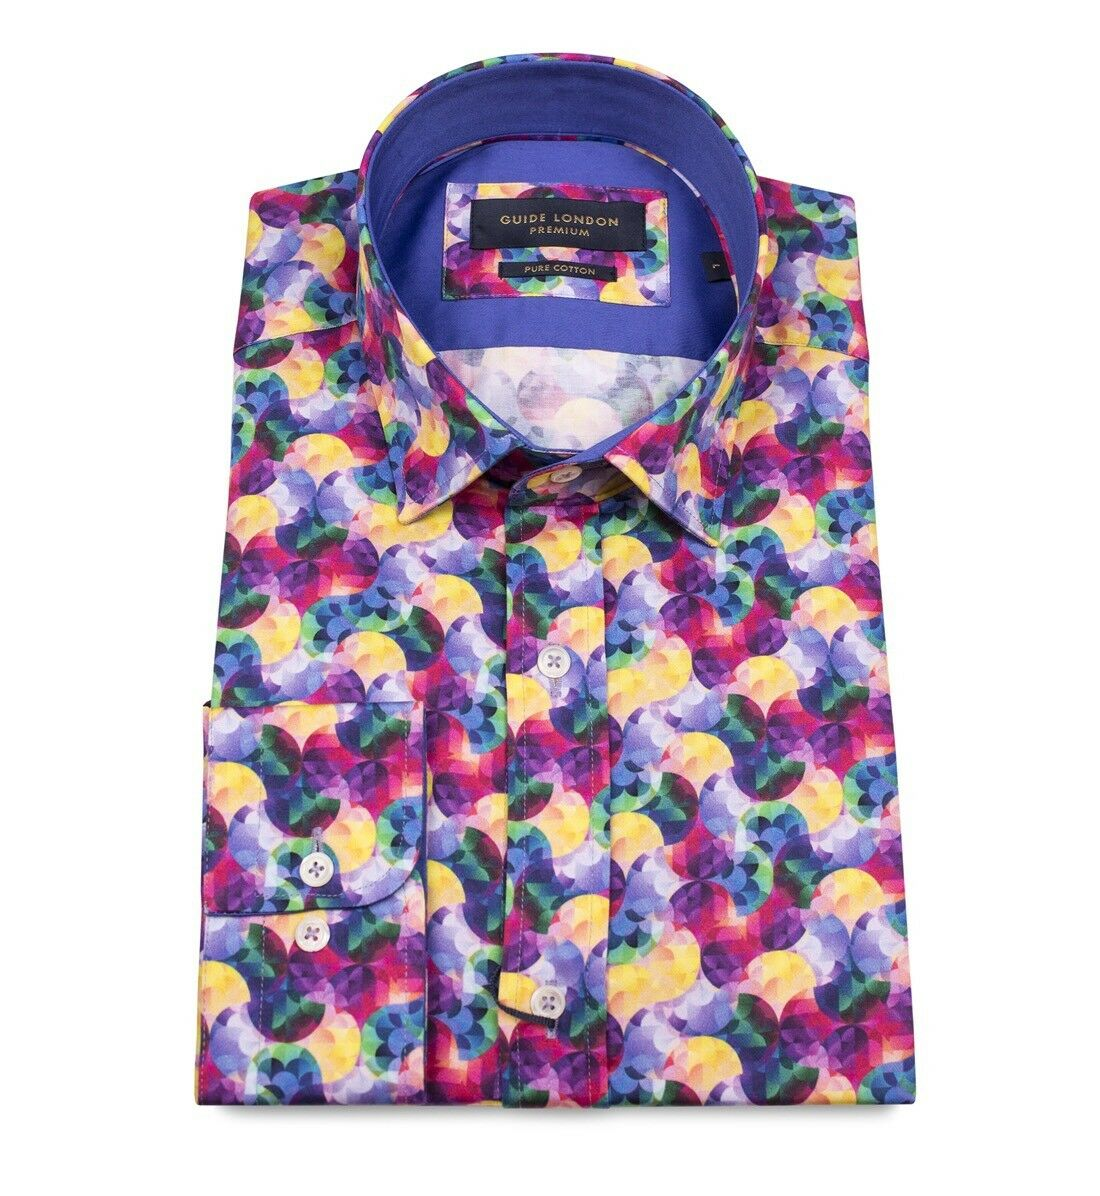 "GUIDE London. Multi Colour. XXL. BNWT. 48"" Chest. Stunning"